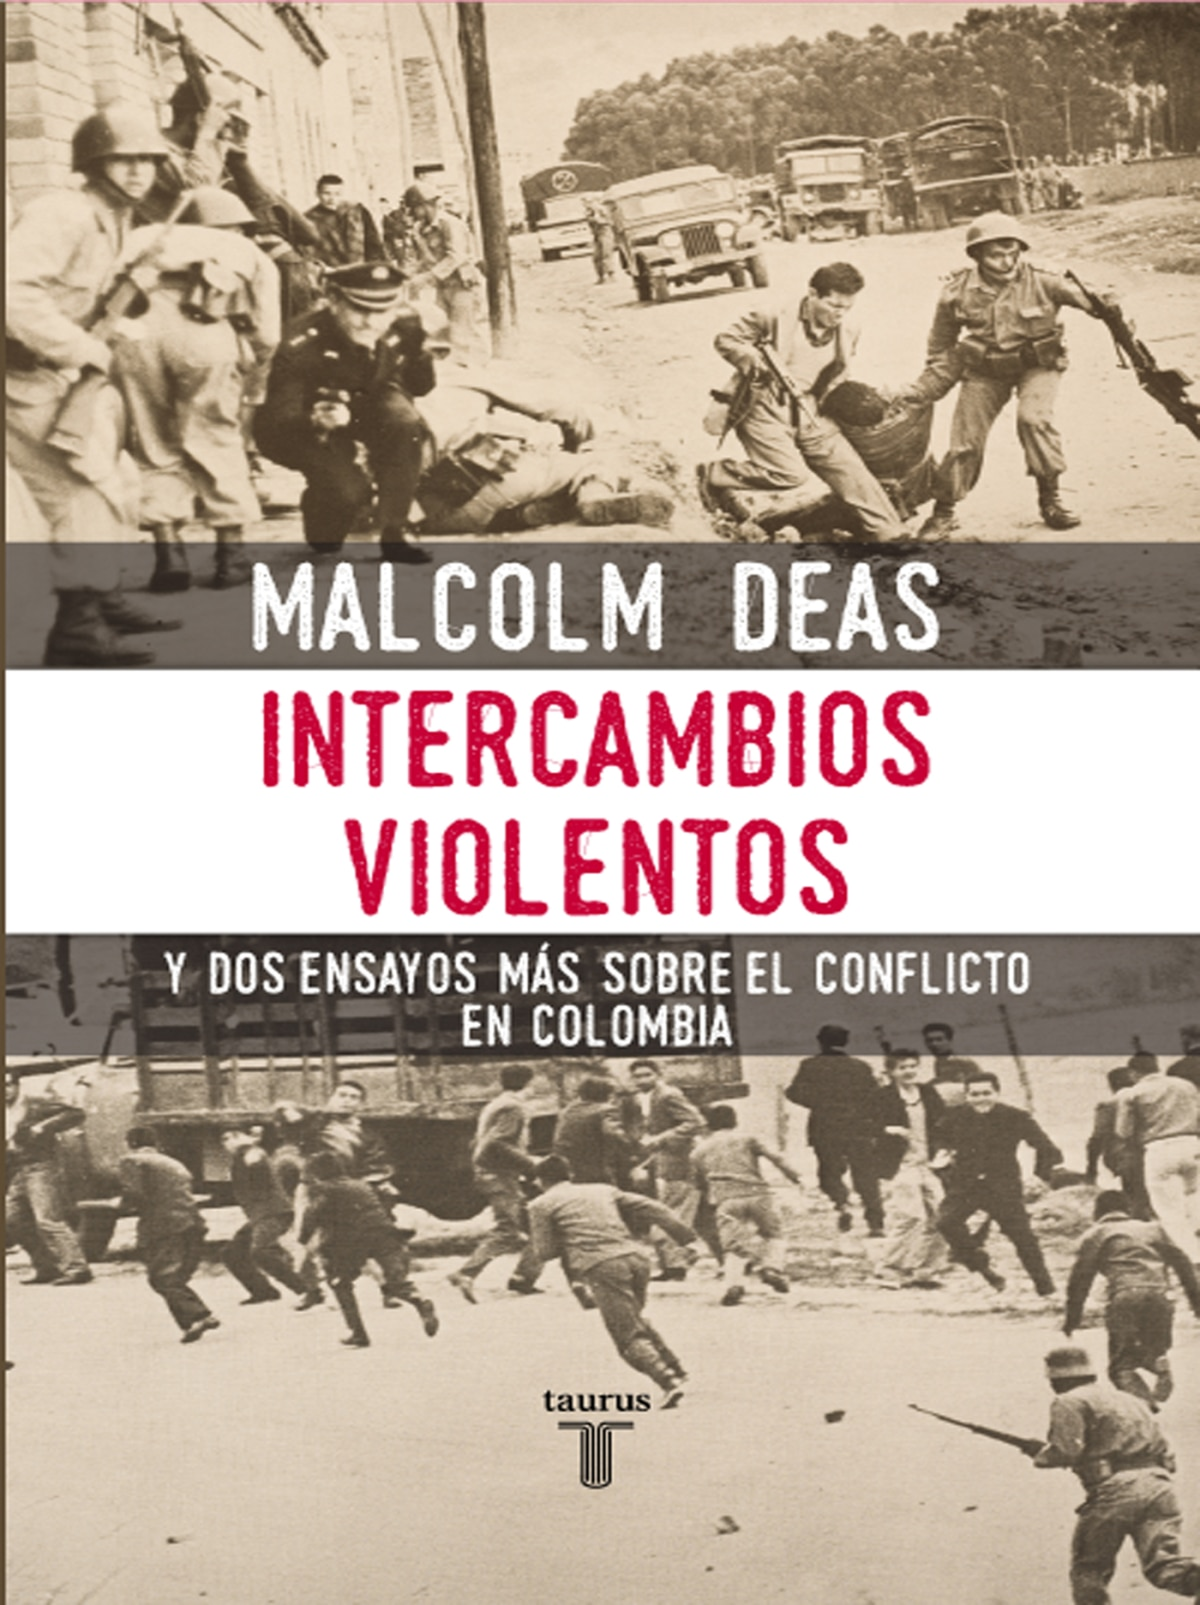 Intercambios violentos